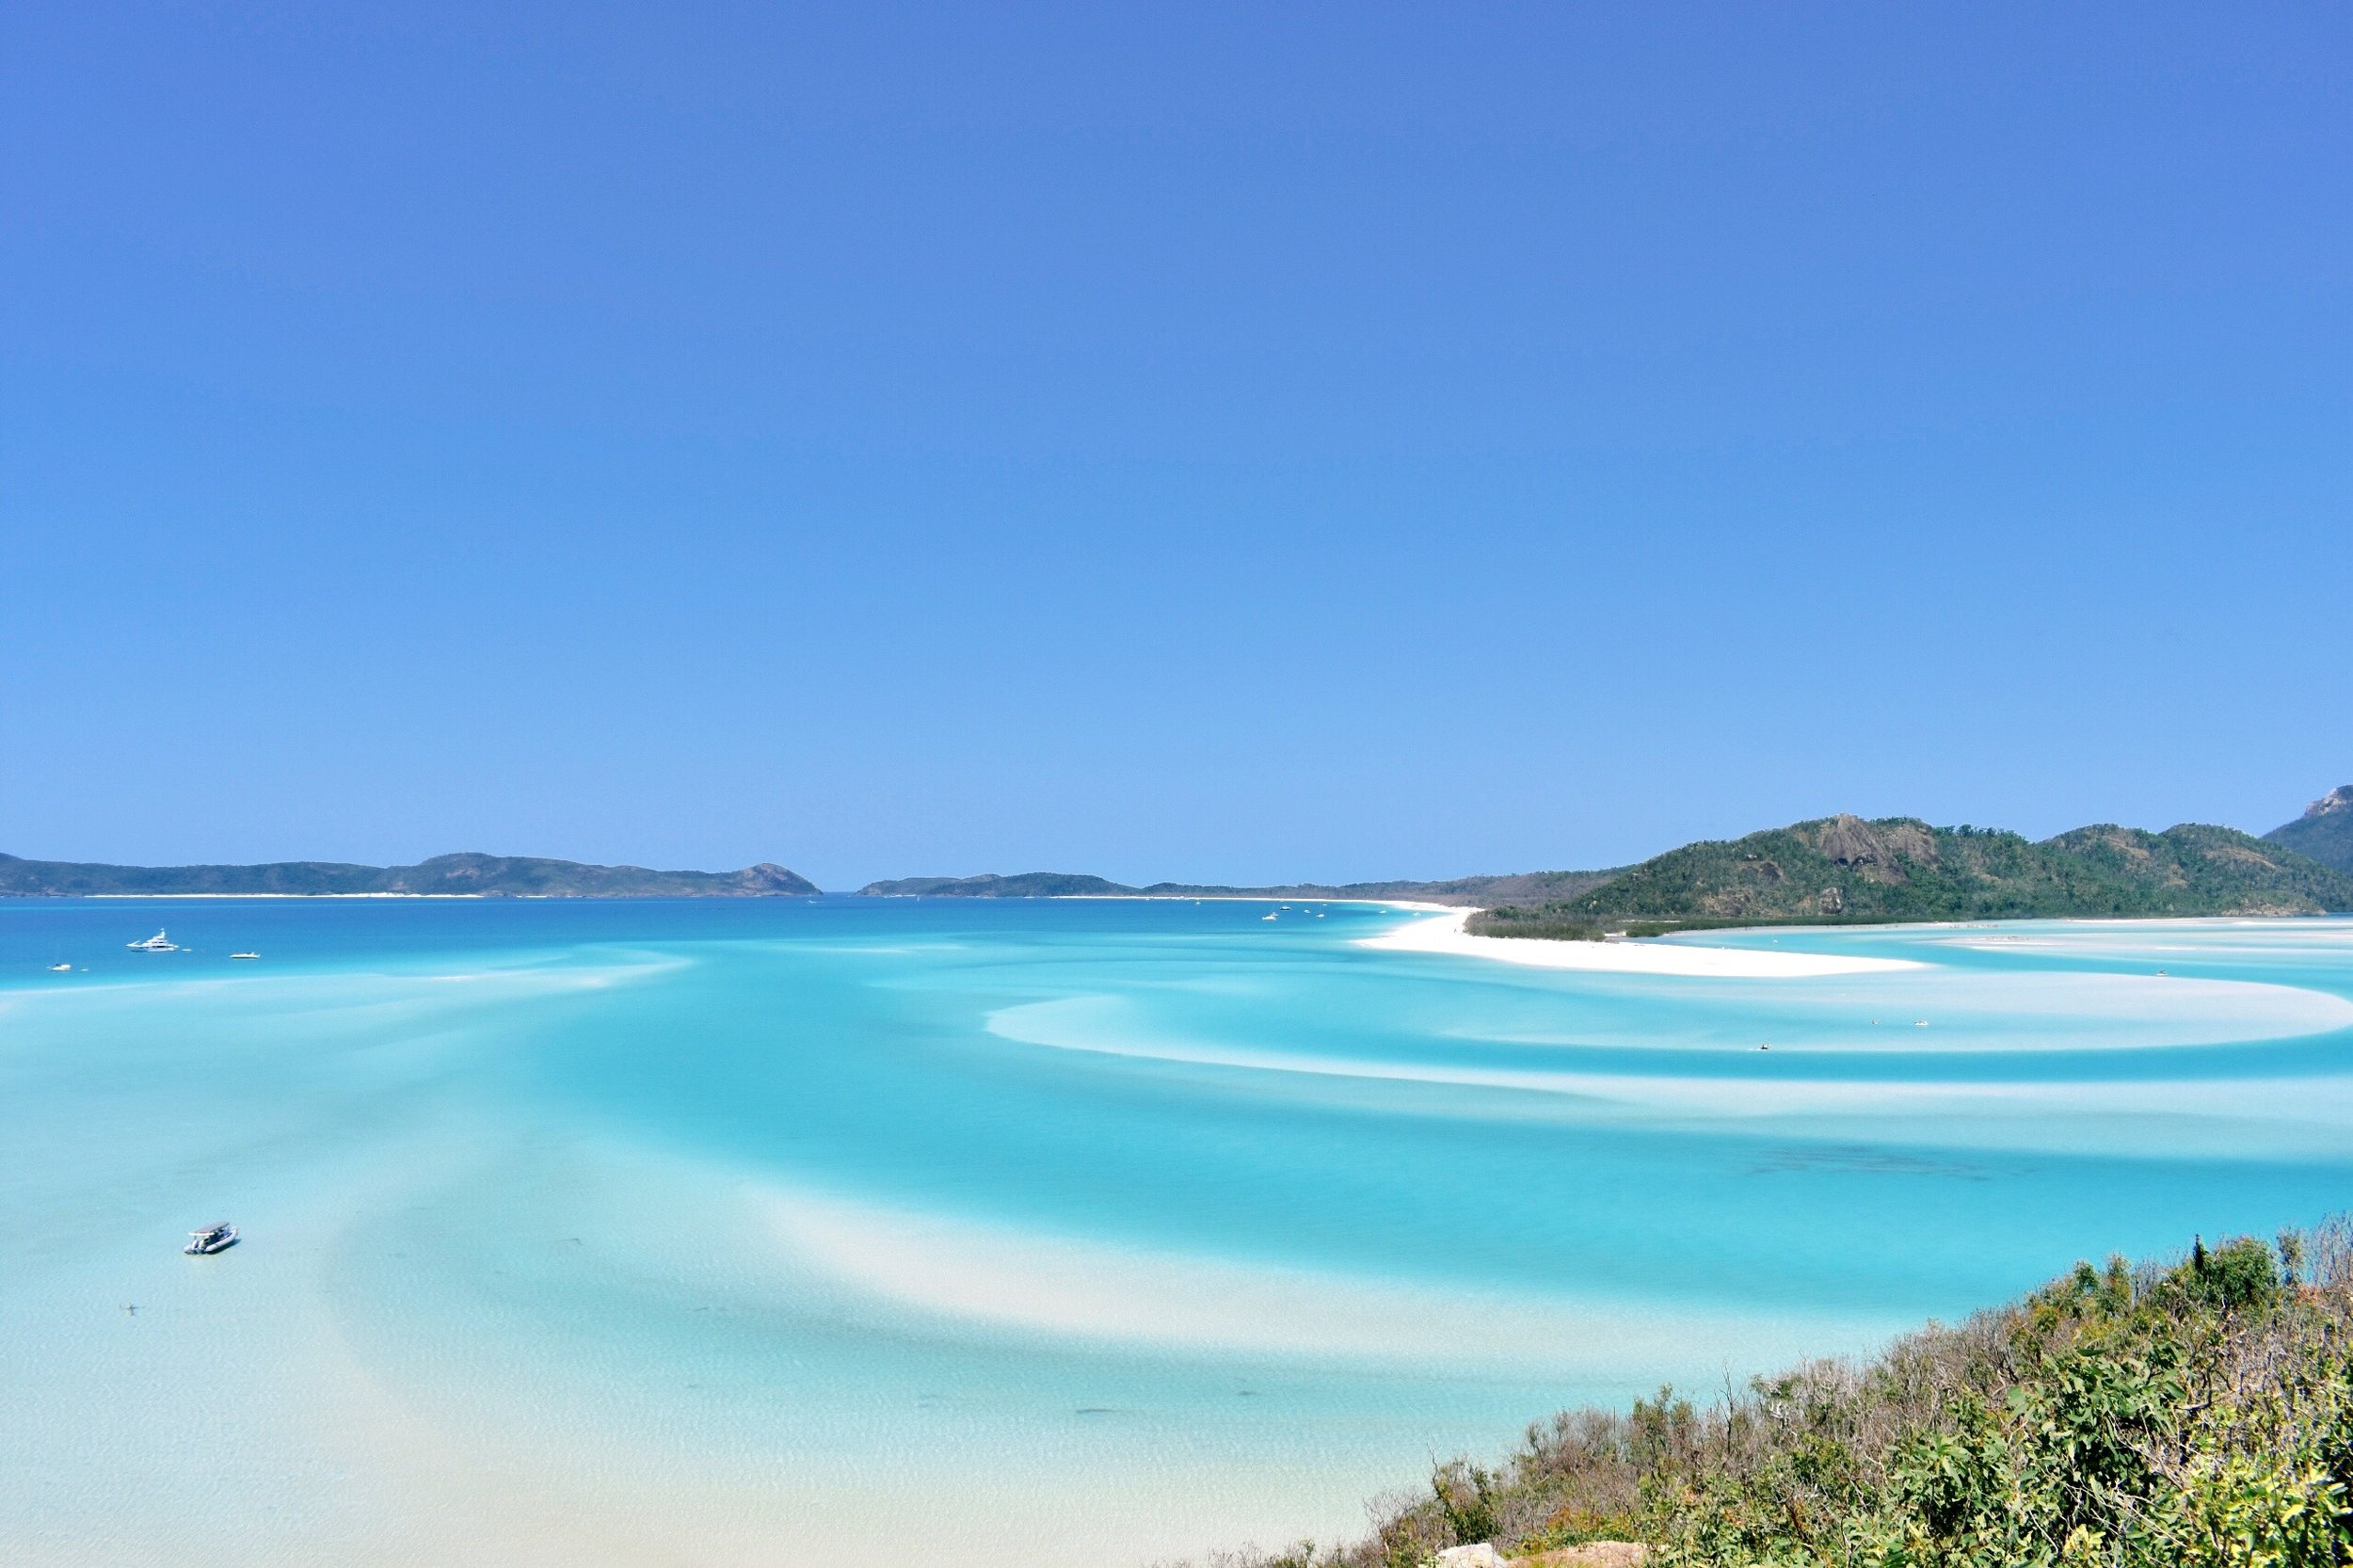 Whitehaven Beach: Did Australia's Most Iconic Beach Live Up To Expectations? -